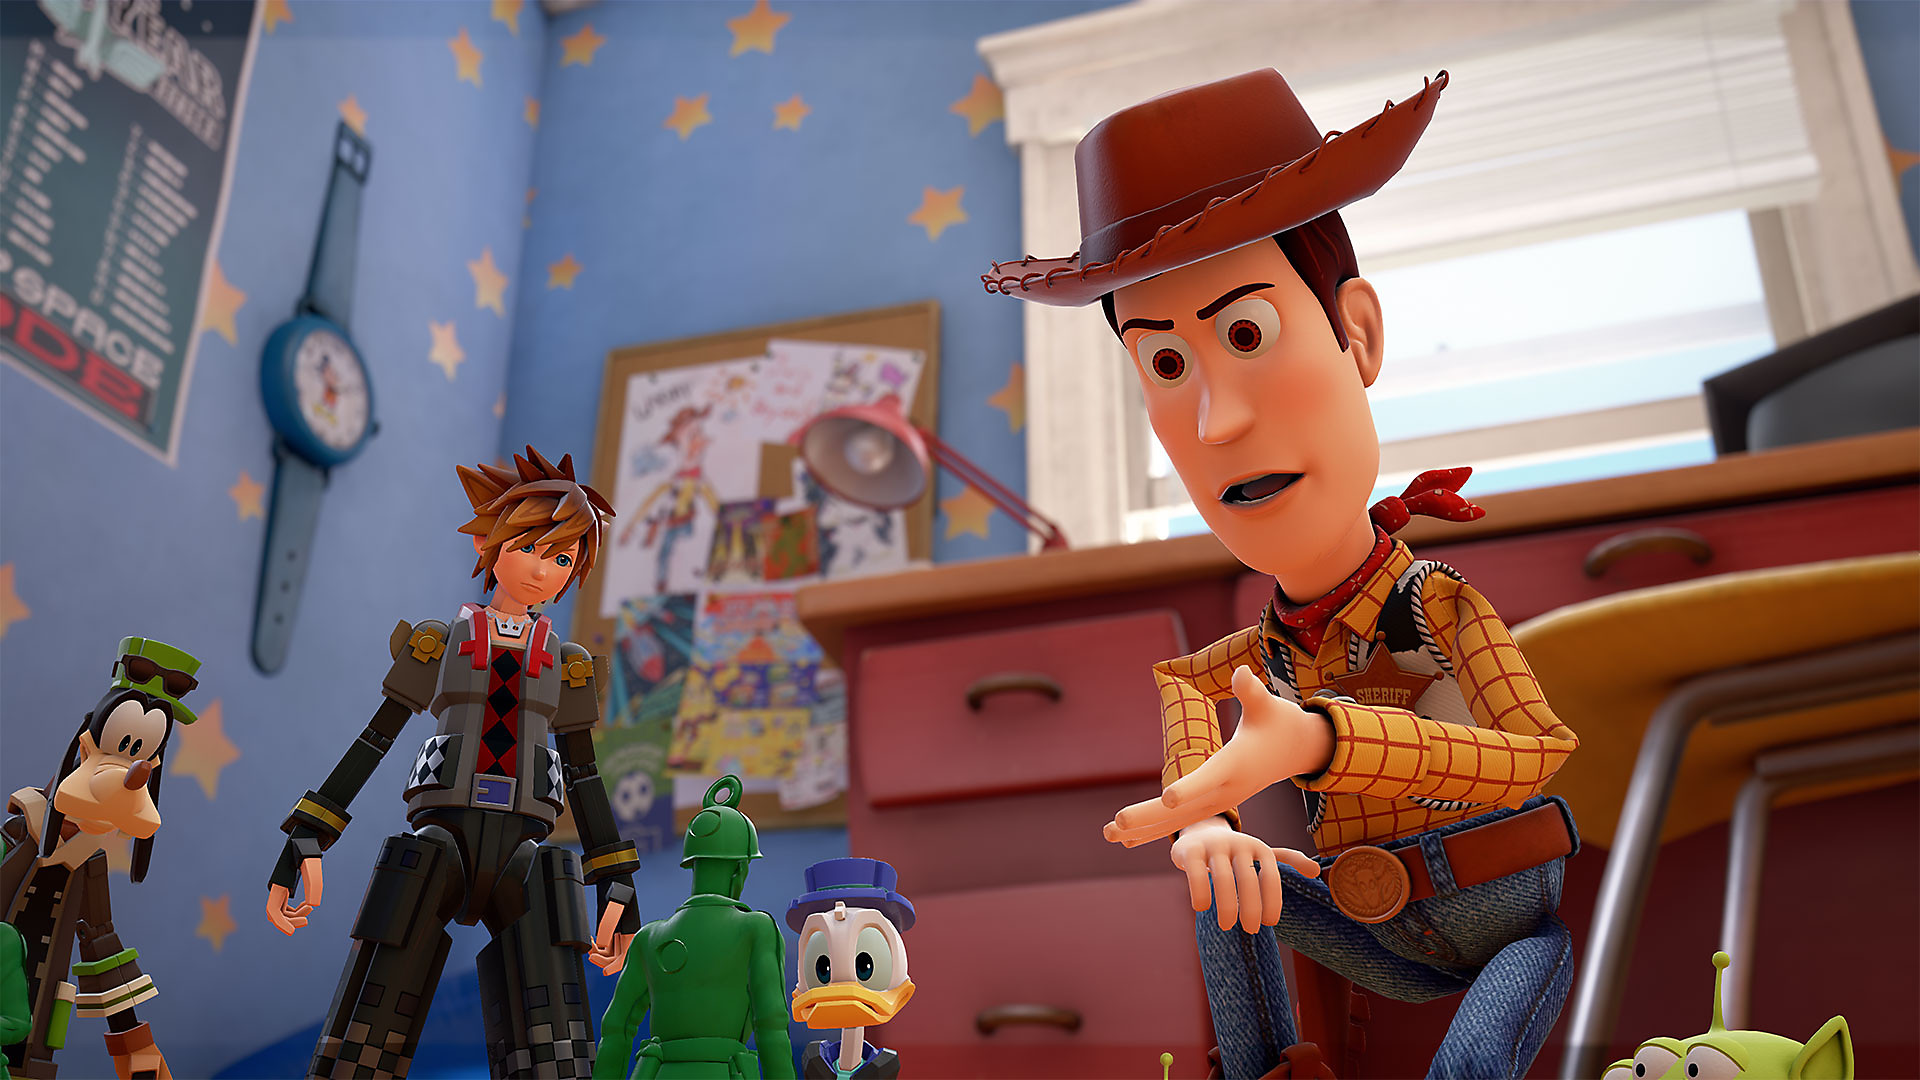 Sora and crew with Woody from Toy Story